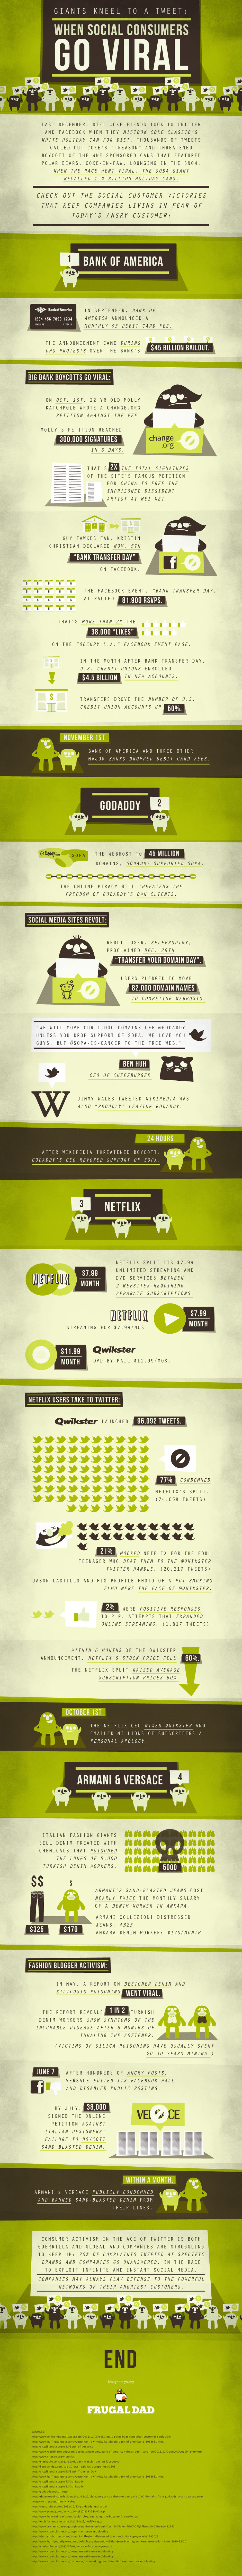 social consumers infographic 972